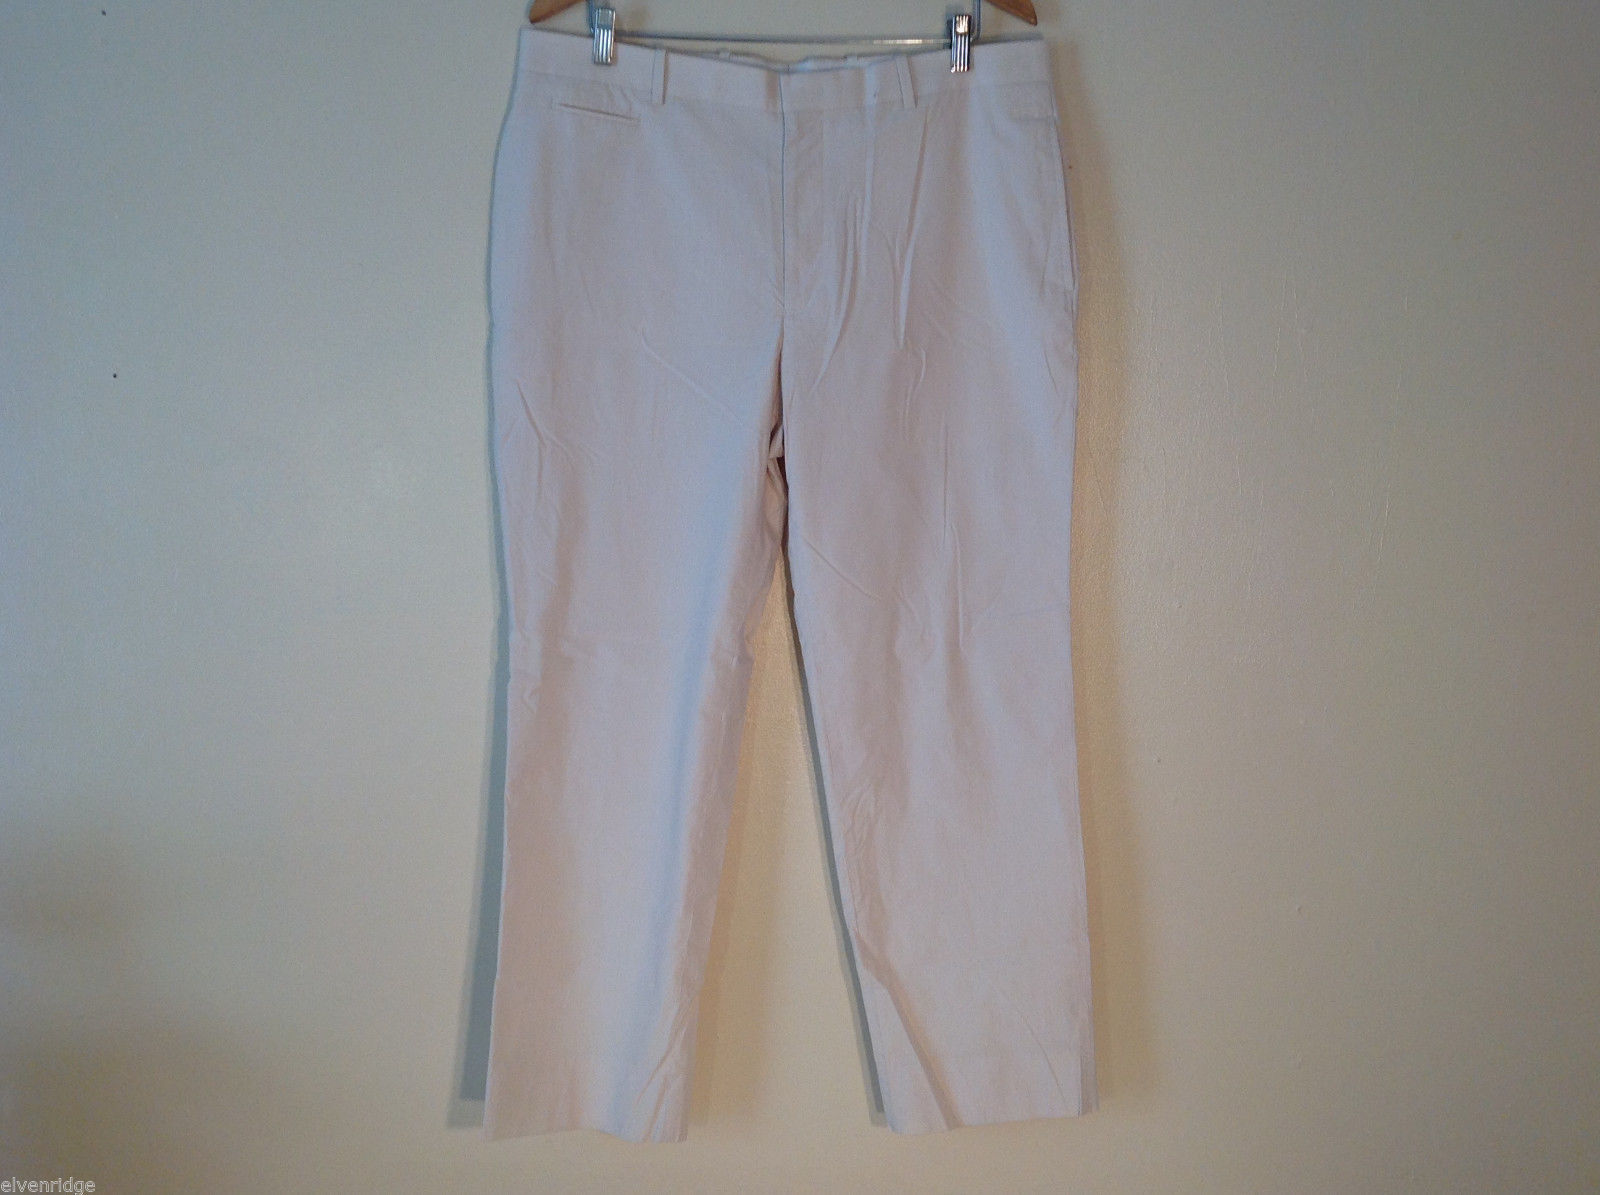 Women INC. Light Colored Cream Khaki Pants Size 36x30 Slim fit